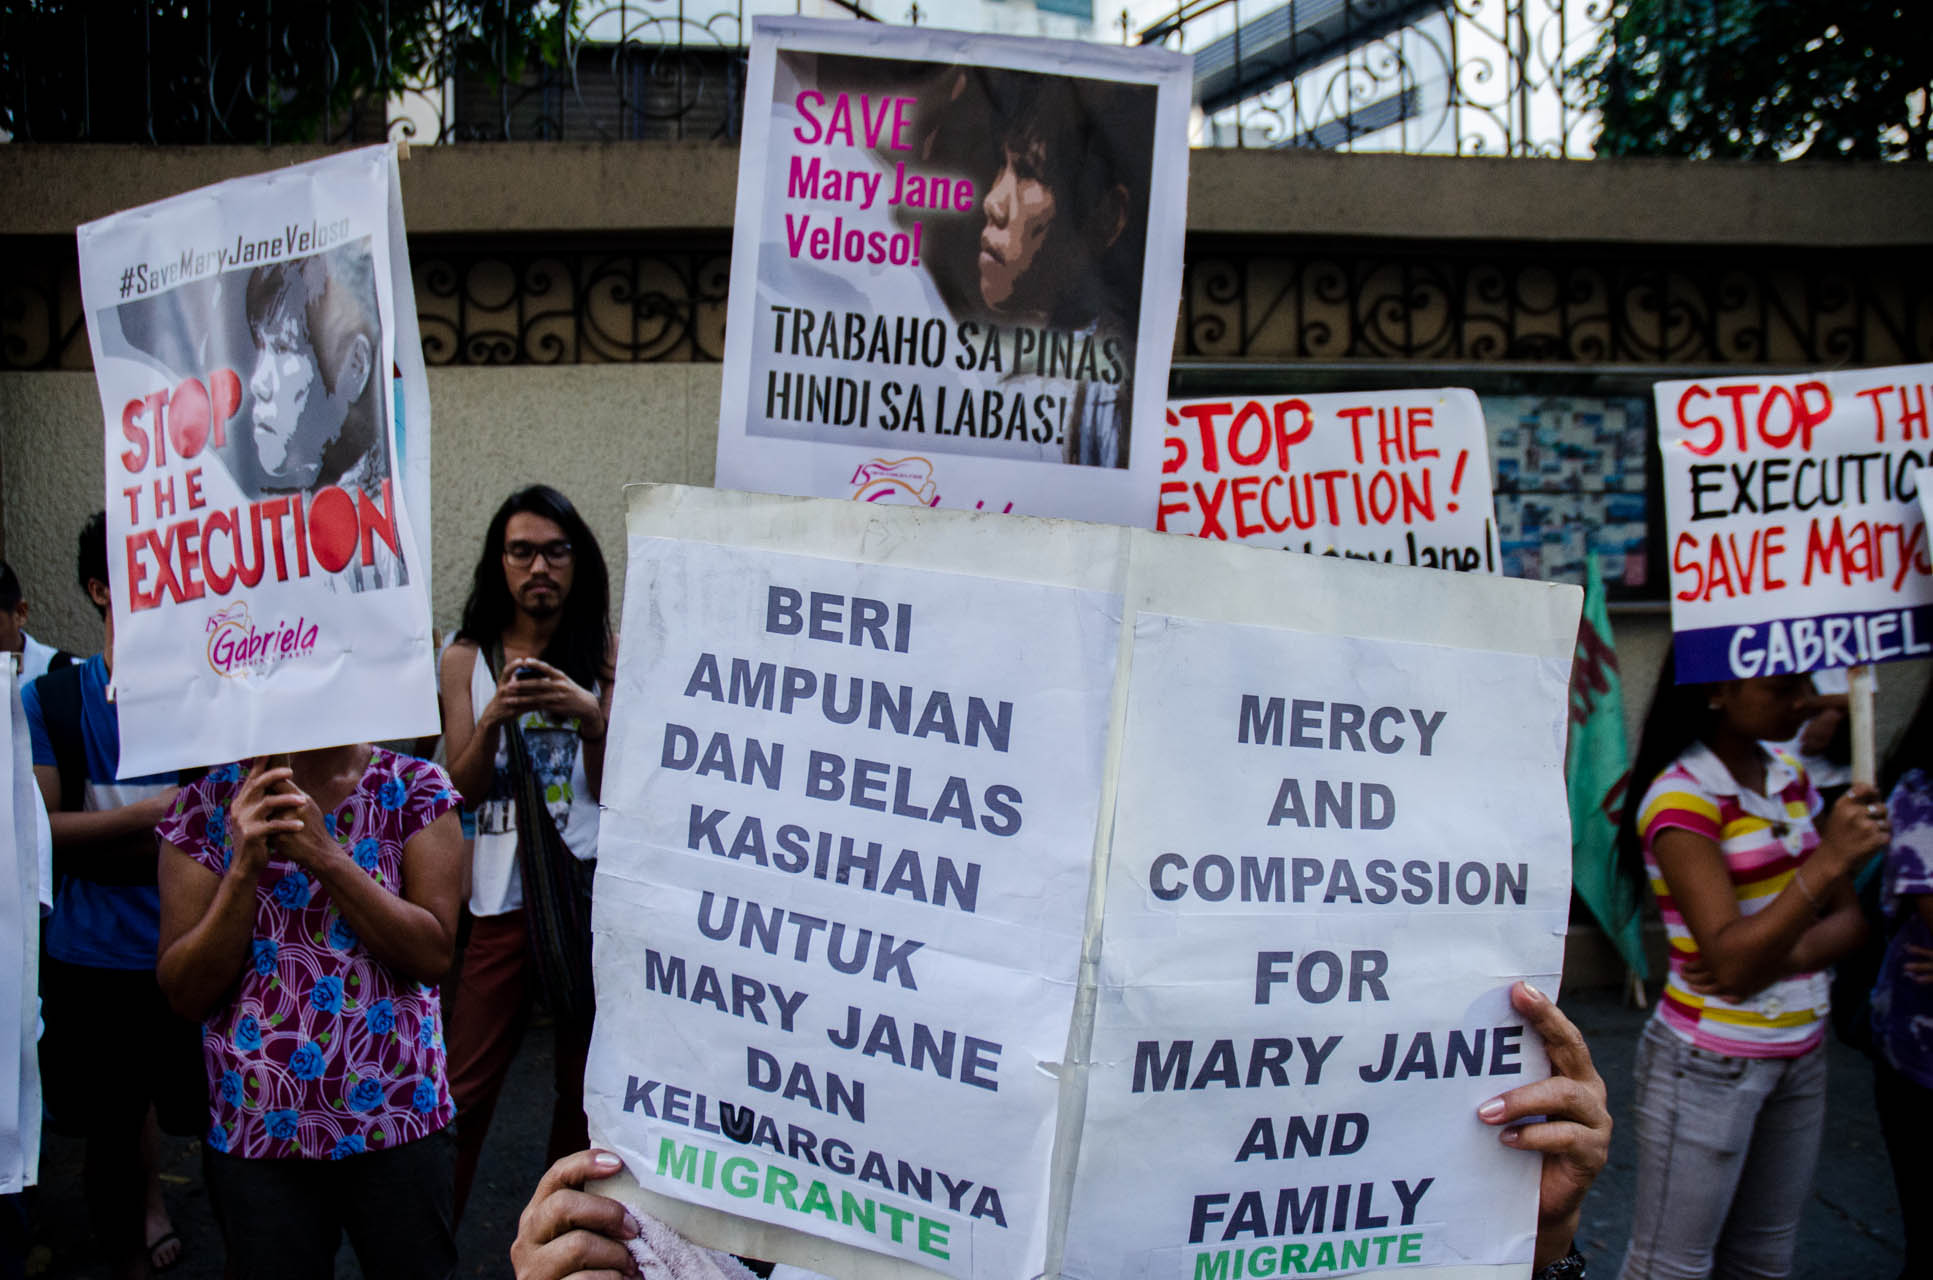 3-DAY VIGIL. Migrante International members stage a prayer vigil rally in front of the Indonesian embassy in Makati City on April 25, 2015 to call for President Jokowi stop the execution of Mary Jane Veloso. Photo by Mark Saludes/Rappler